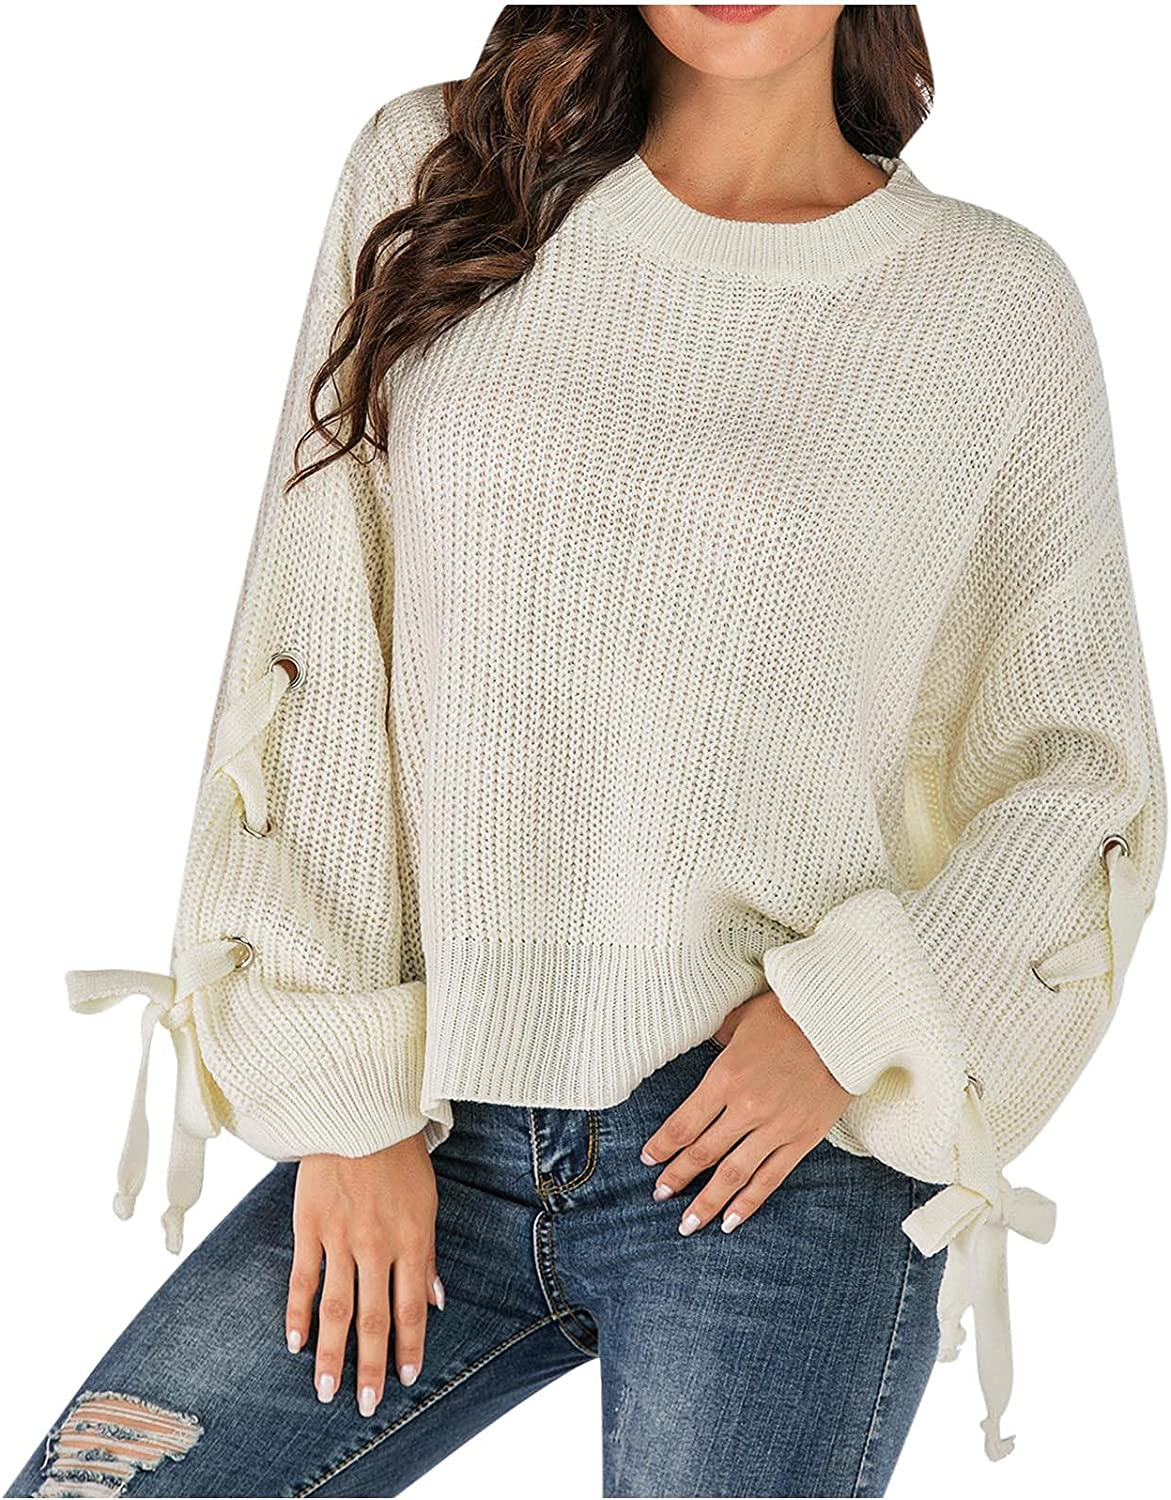 Women's Pullover New Free Shipping Sweater Casual Fashion Sle Knitted Long Topics on TV Lace up